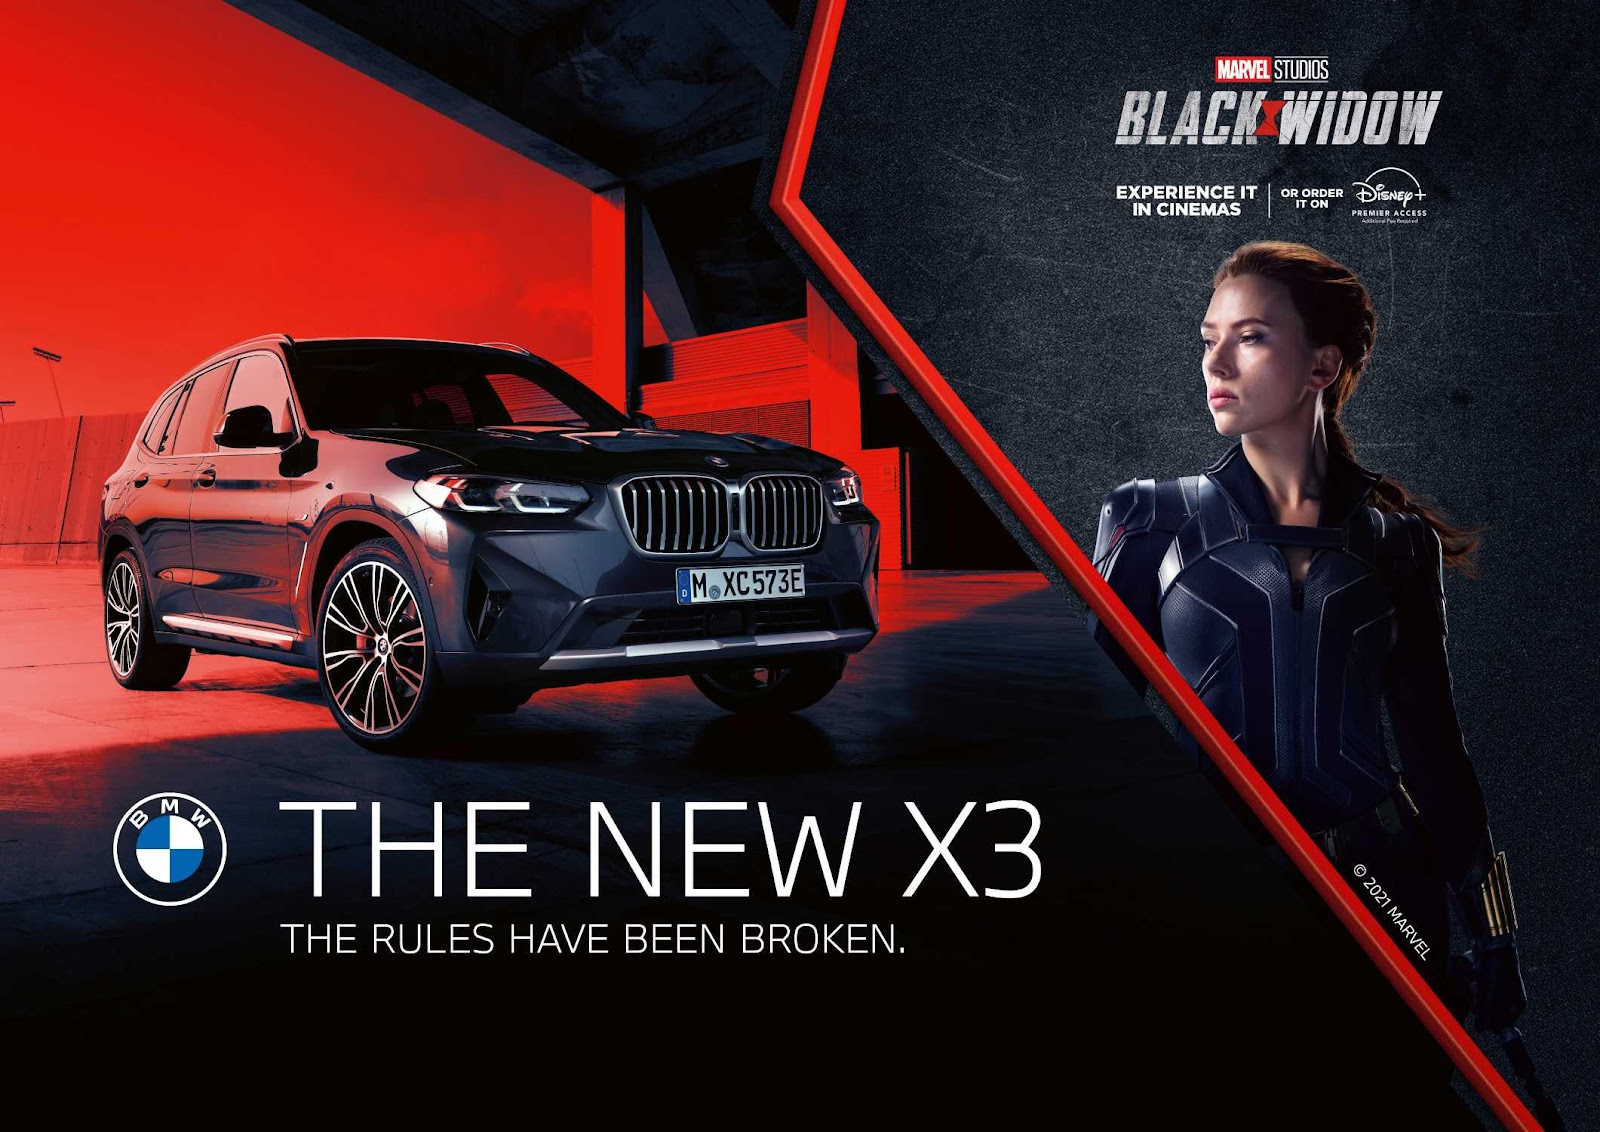 BMW teams up with Marvel Studios' Black Widow for a spectacular cinema  experience.